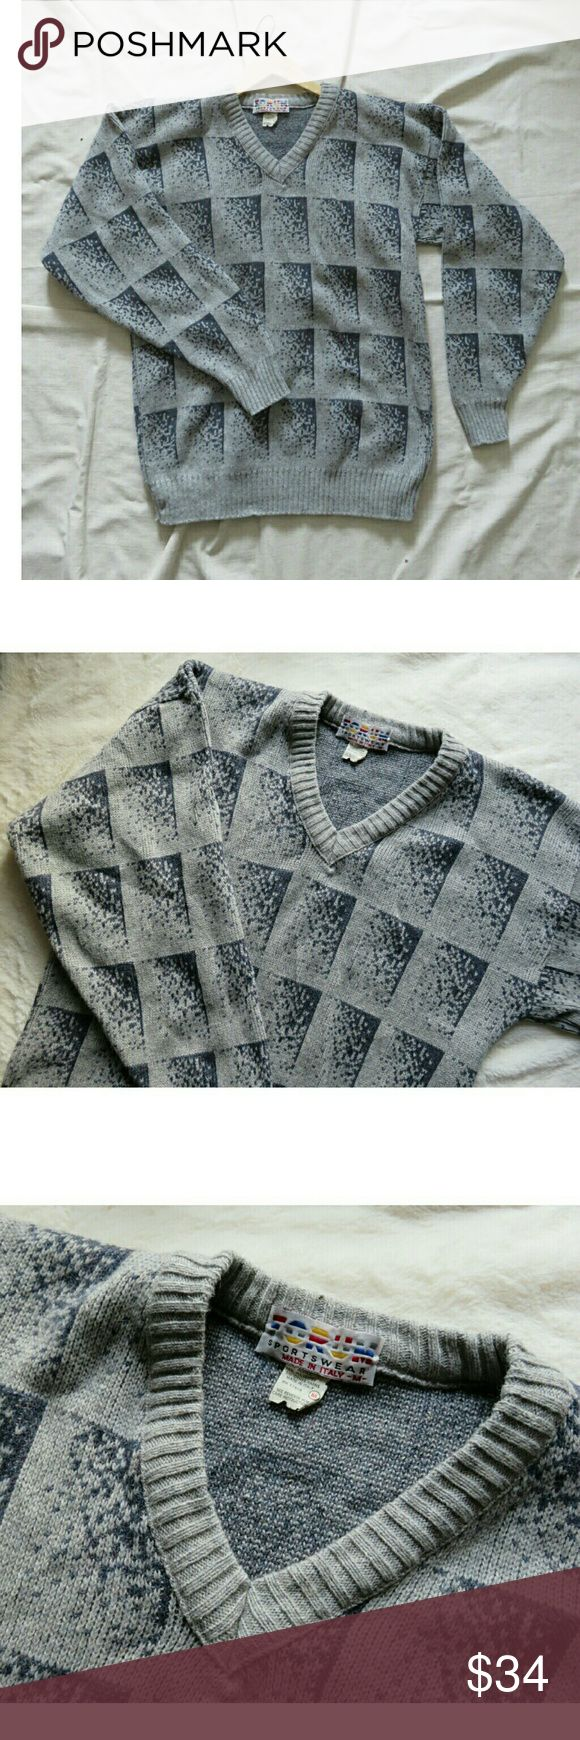 """Men's Vintage Italy Wool Sweater Gray Grid Med Awesome vintage sweater made in Italy from Forum Sportswear! All over grid/ geometric pattern in gray and white. V-neck, wide cuffs at sleeves. 60% wool, 20% acrylic, 15% polyester, 5% other yarns. Unisex, Size Men's Medium, Ladies oversized Medium/ Large. Measures lying flat approximately 21"""" across chest, 29"""" from shoulder to waist, and 27"""" from shoulder down sleeve to wrist. Excellent condition, like new! Packed carefully and shipped fast…"""